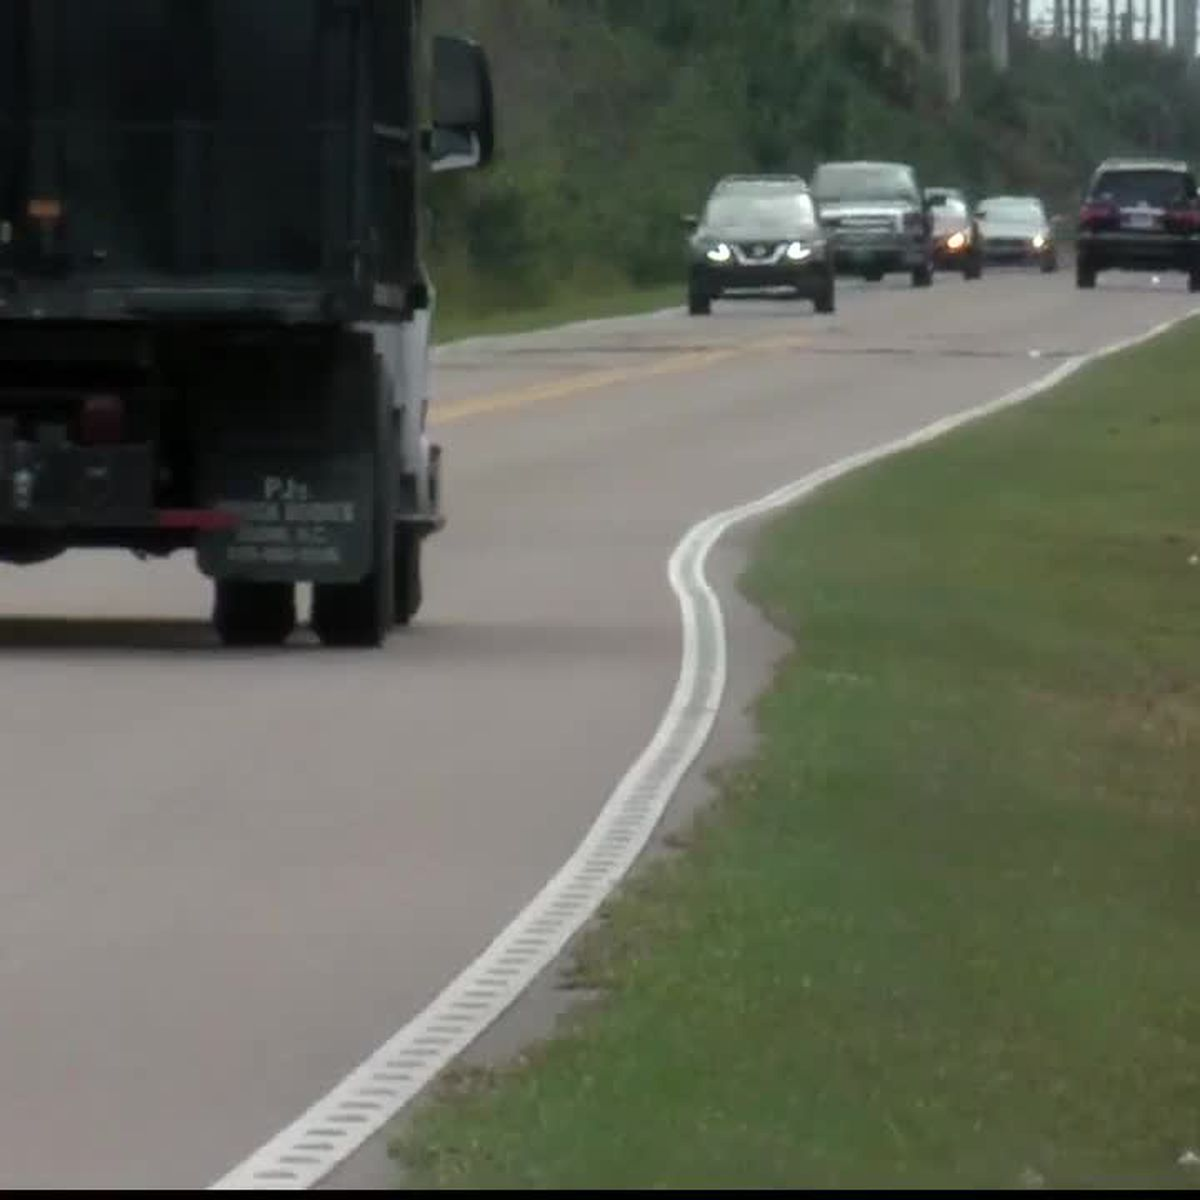 After Fatal Accident on River Road, Residents Are Demanding Safety Changes